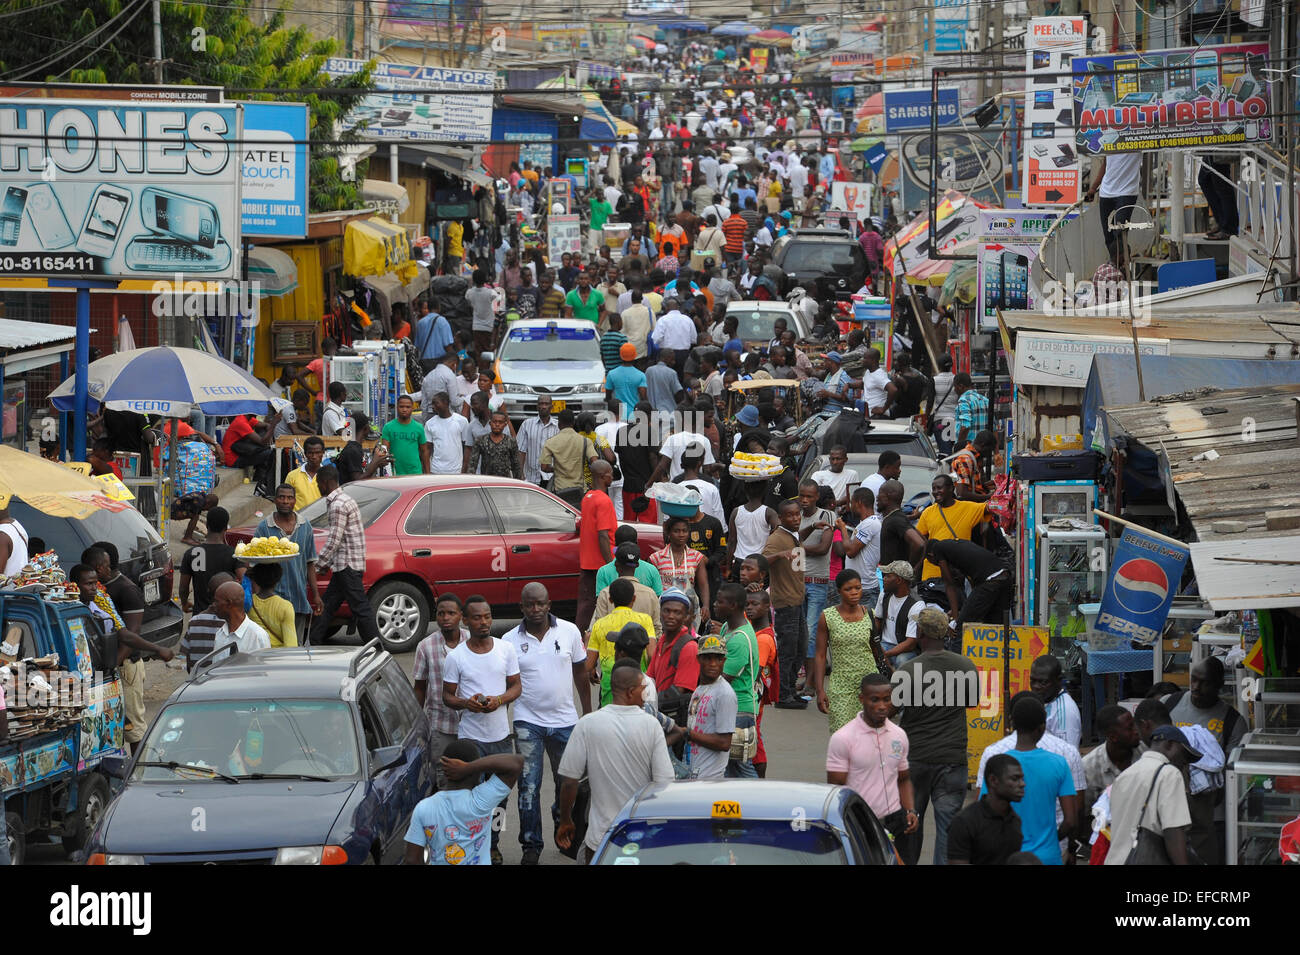 Main shopping district in downtown Accra, Ghana, West Africa. - Stock Image